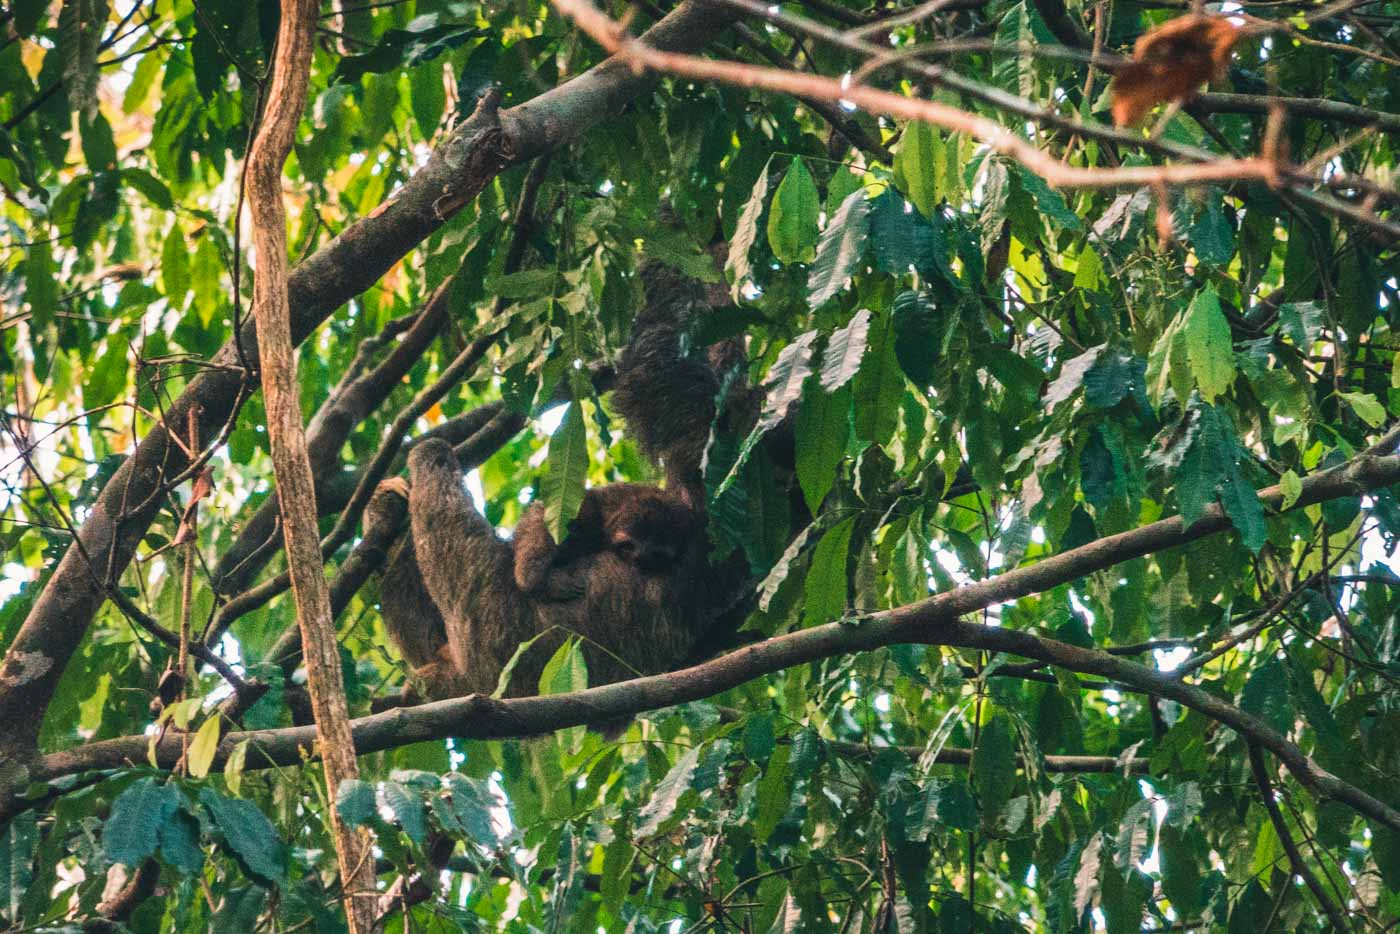 Baby sloth and mama sloth hanging on a tree in Corcovado National Park